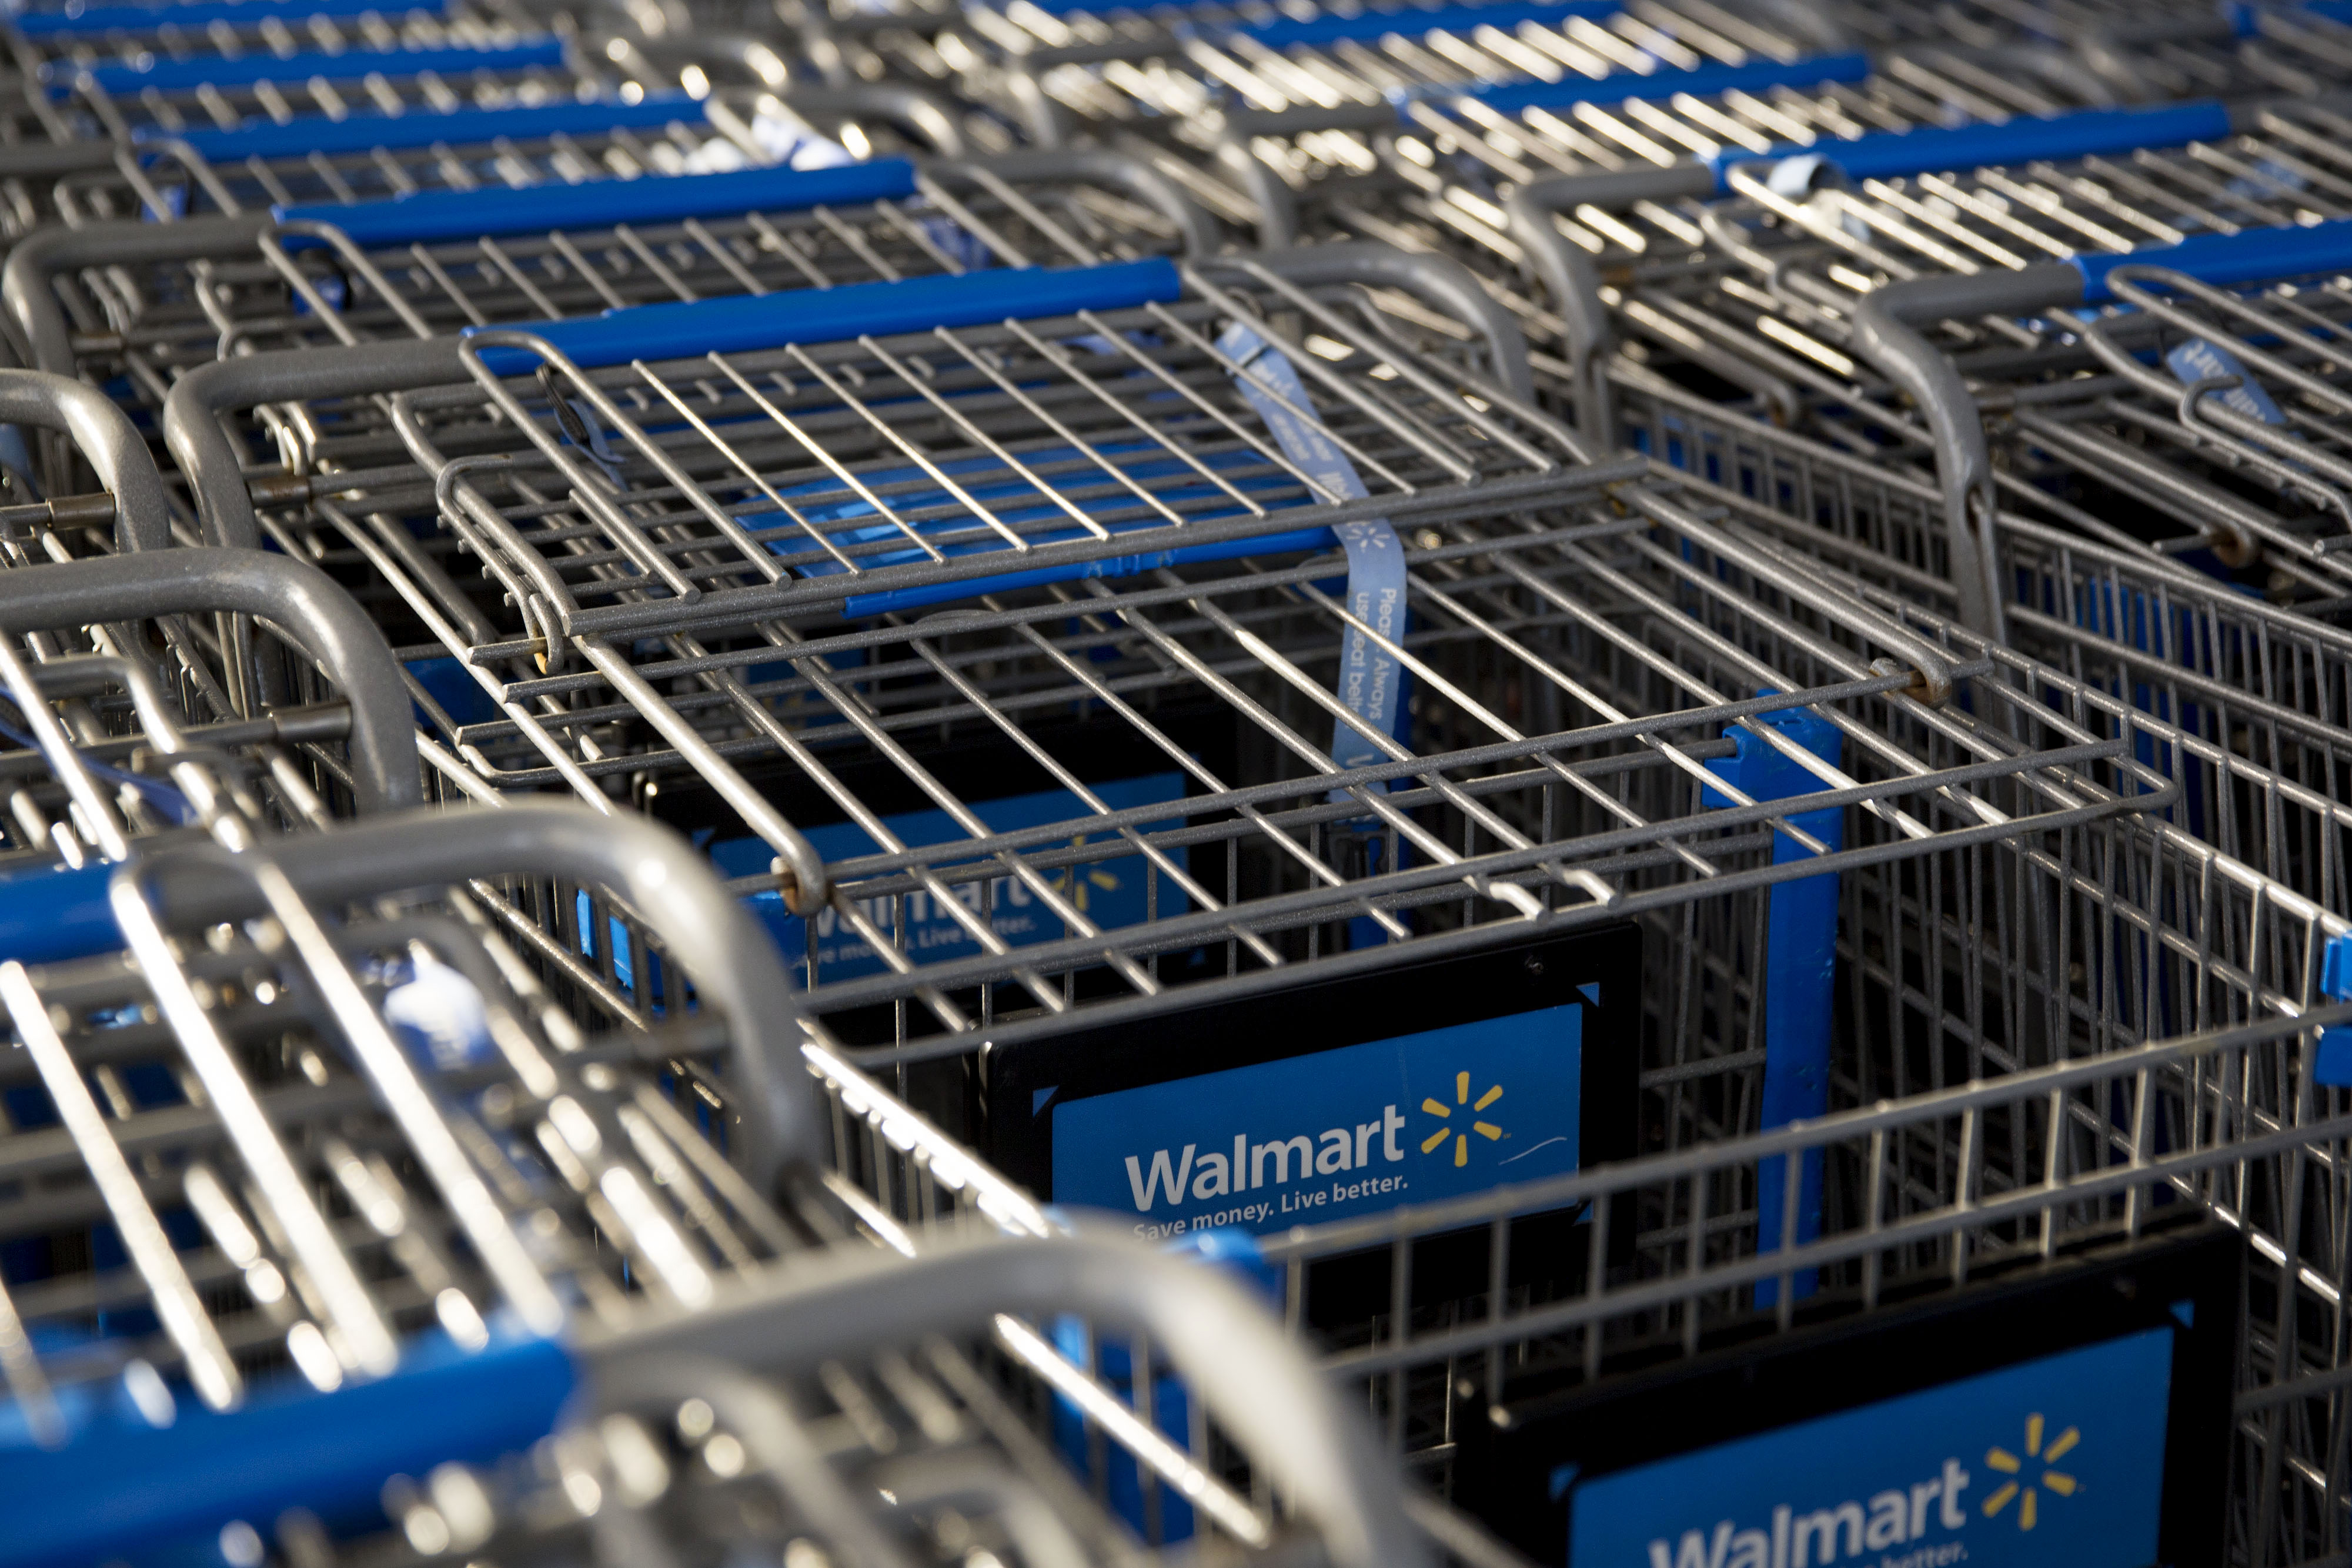 Synchrony says it lost Walmart card in battle with Capital